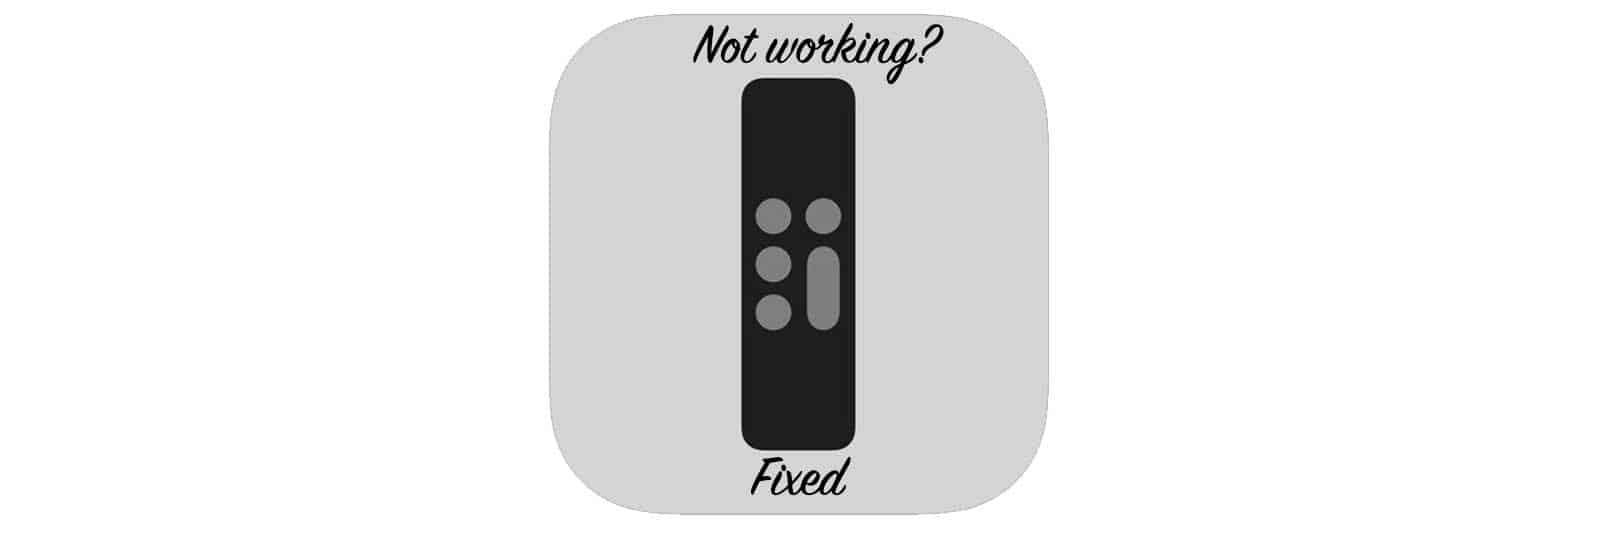 apple-remote-app-not-working